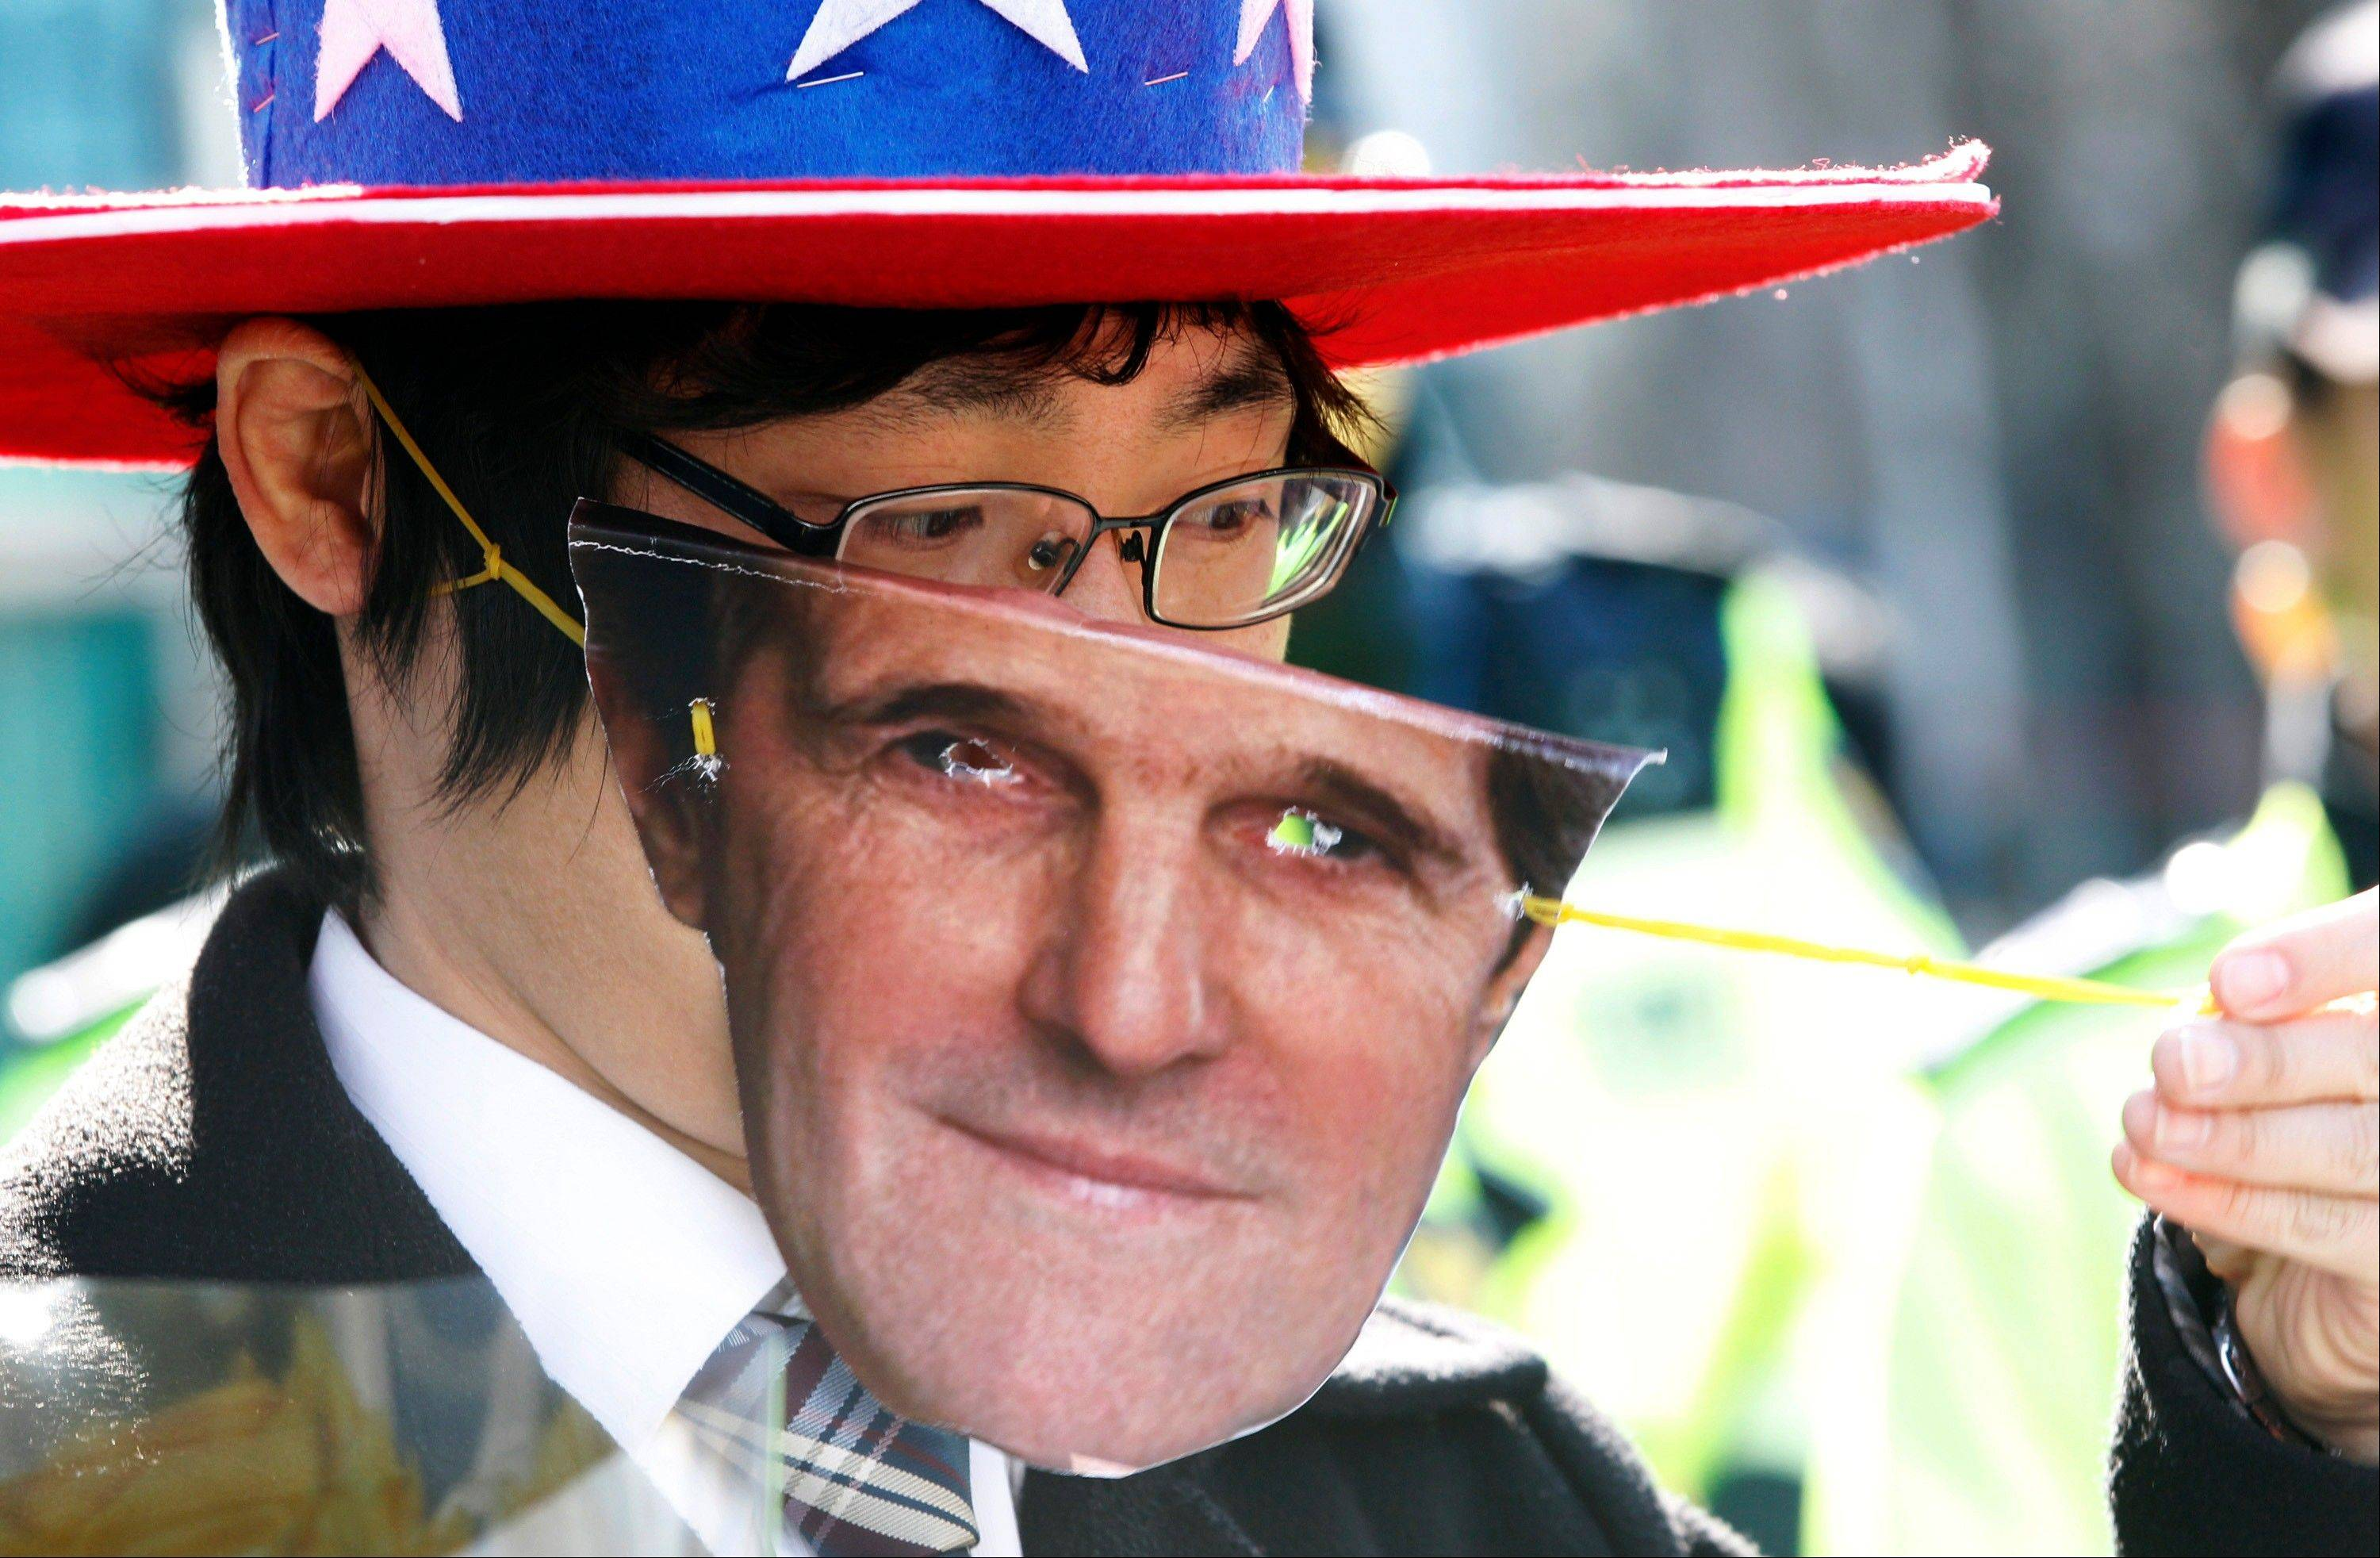 A South Korean protester wears a mask of U.S. Secretary of State John Kerry during a rally to denounce the military exercises and demanding Kerry to go to North Korea for peace in front of the Foreign Ministry in Seoul, South Korea, Friday, April 12, 2013. Kerry arrived in South Korea on Friday on an unusual diplomatic journey, traveling directly into a region bracing for a possible North Korean missile test and risking that his presence alone could spur Pyongyang into another headline-seeking provocation.